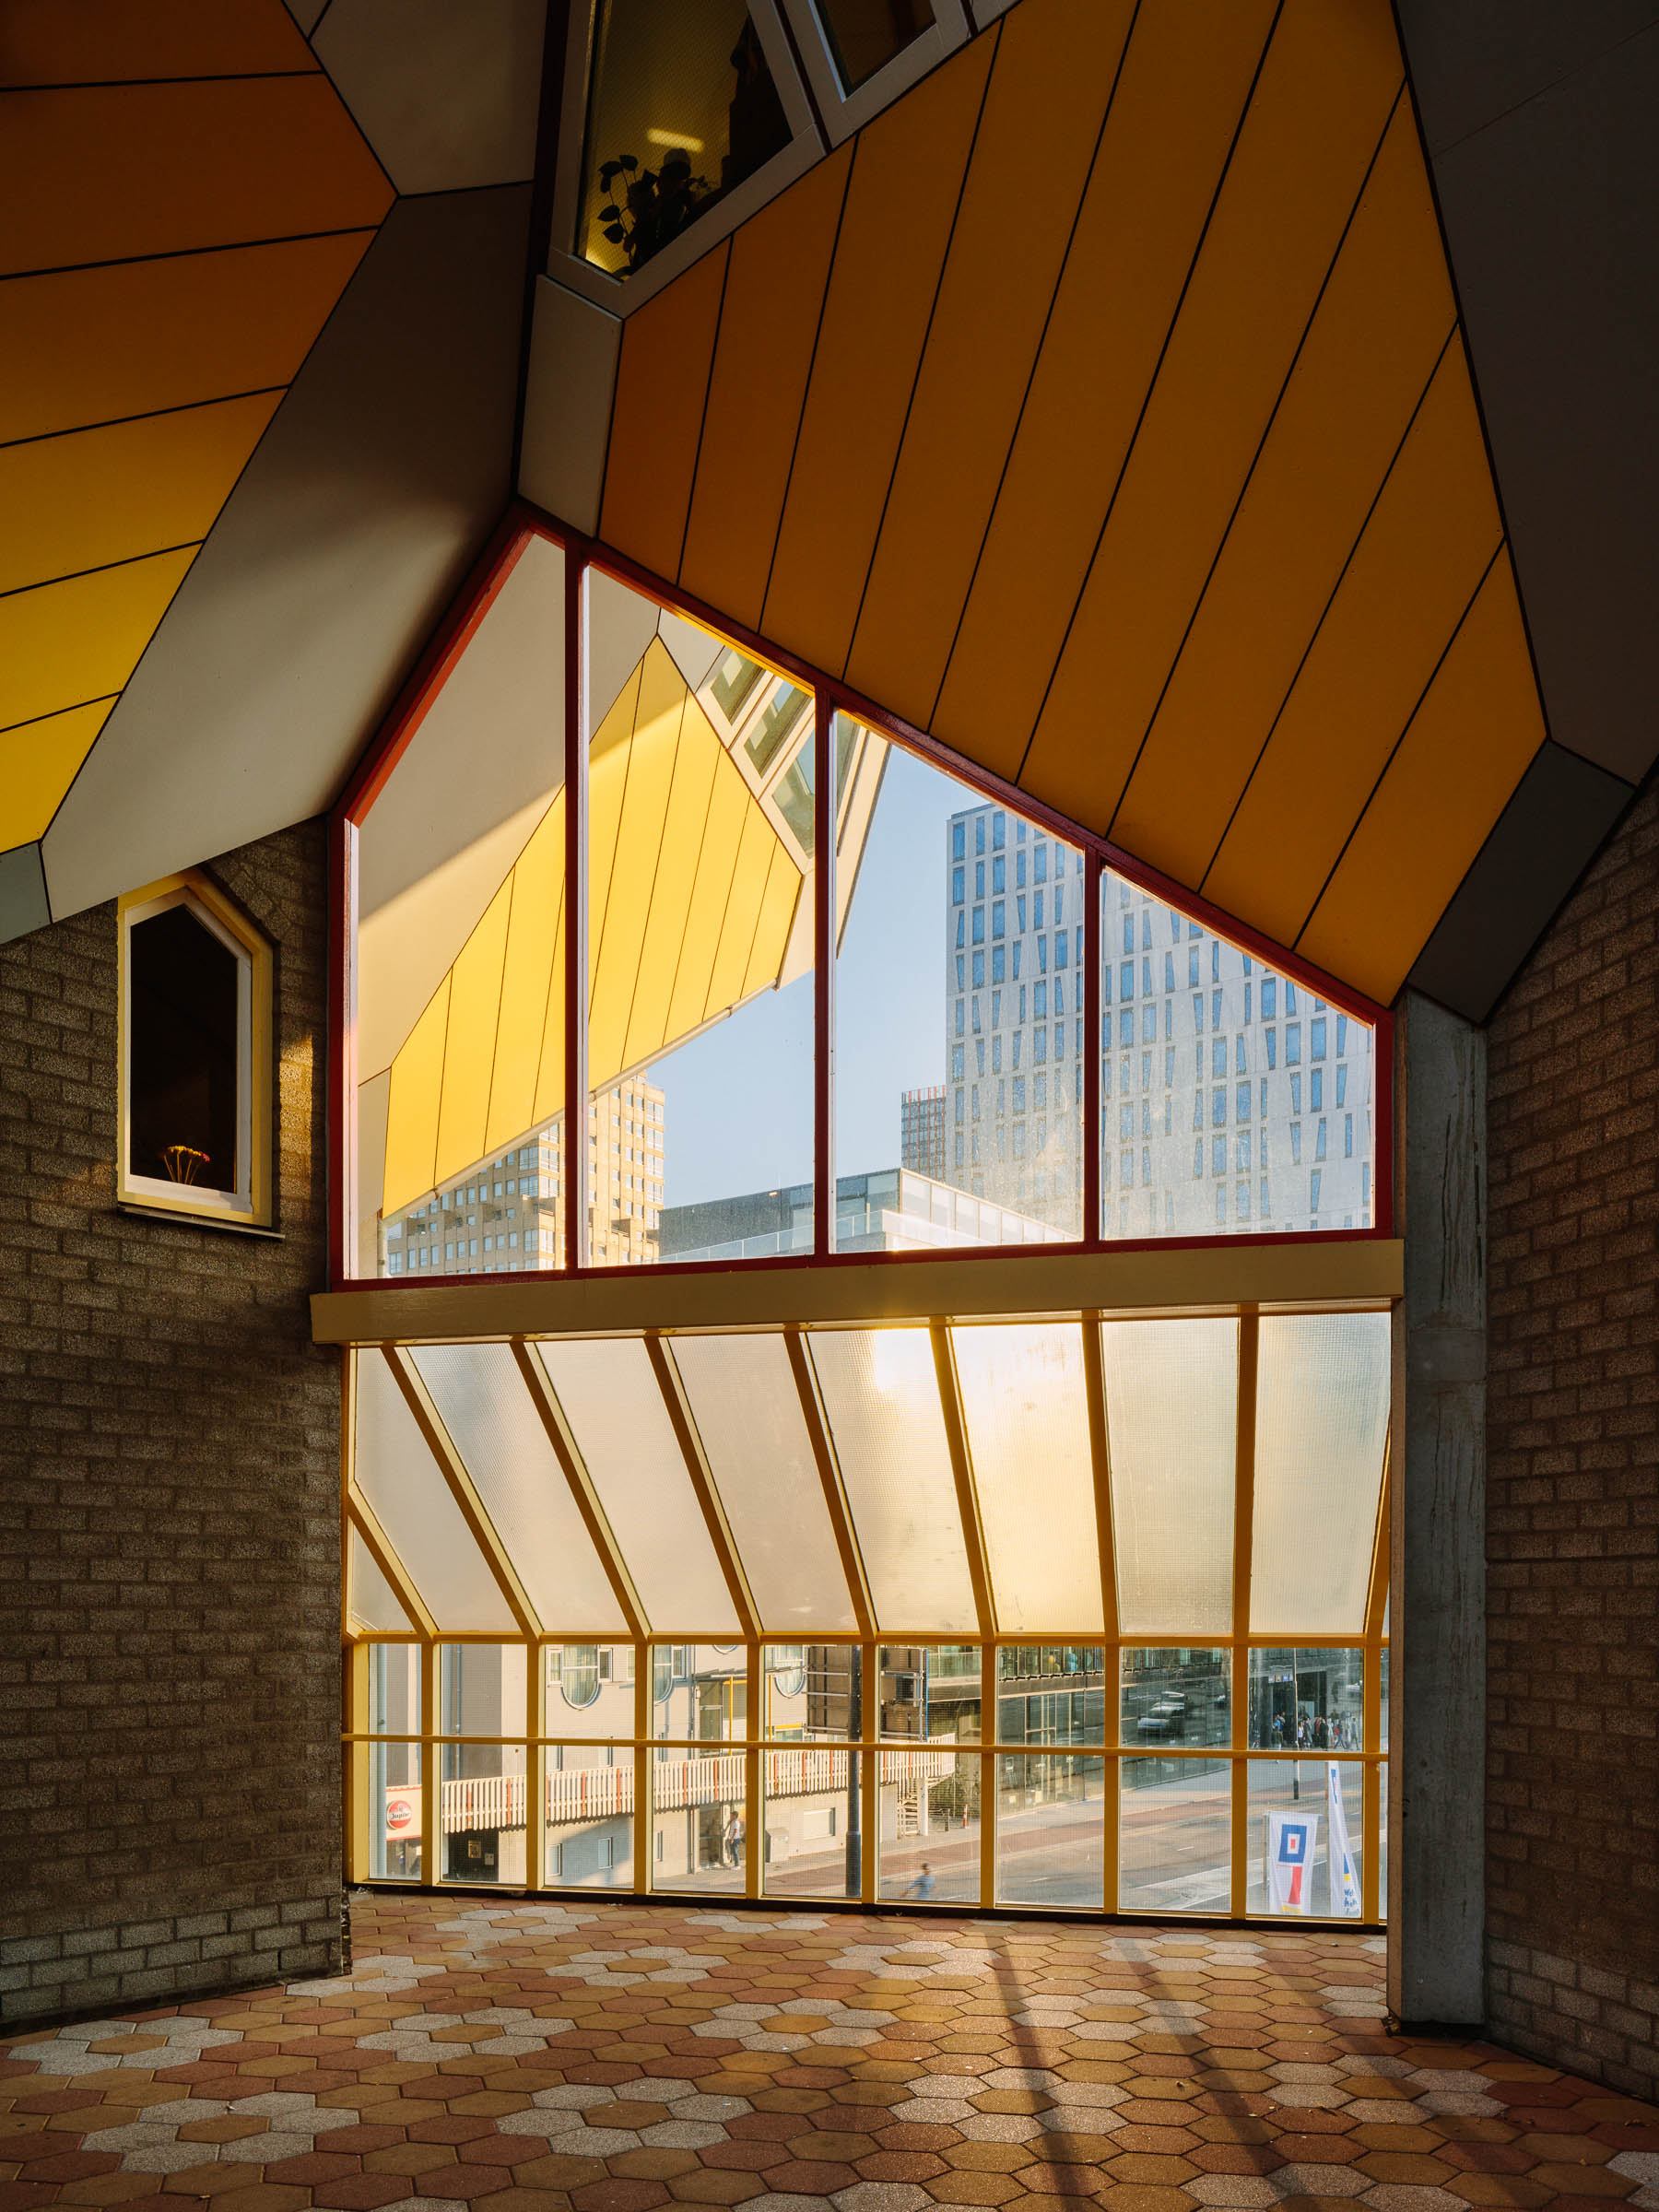 Architectural photography of the project Kubuswoningen in Rotterdam by Piet Blom, photographer Jakob Börner architectural photographer Hamburg